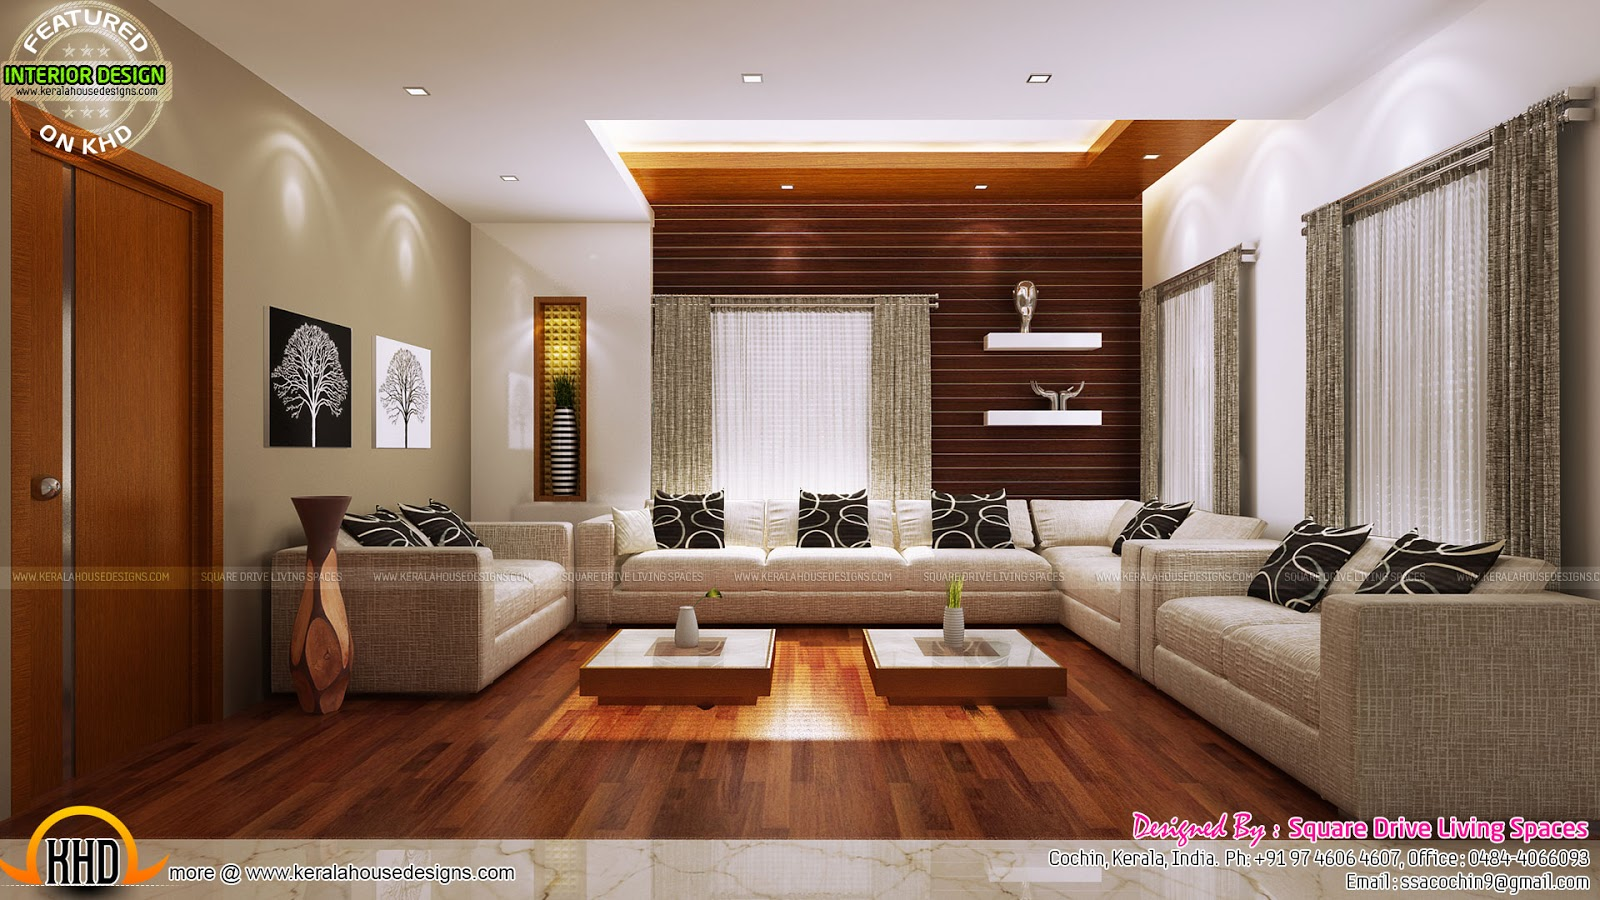 Excellent kerala interior design kerala home design and for Kerala interior designs